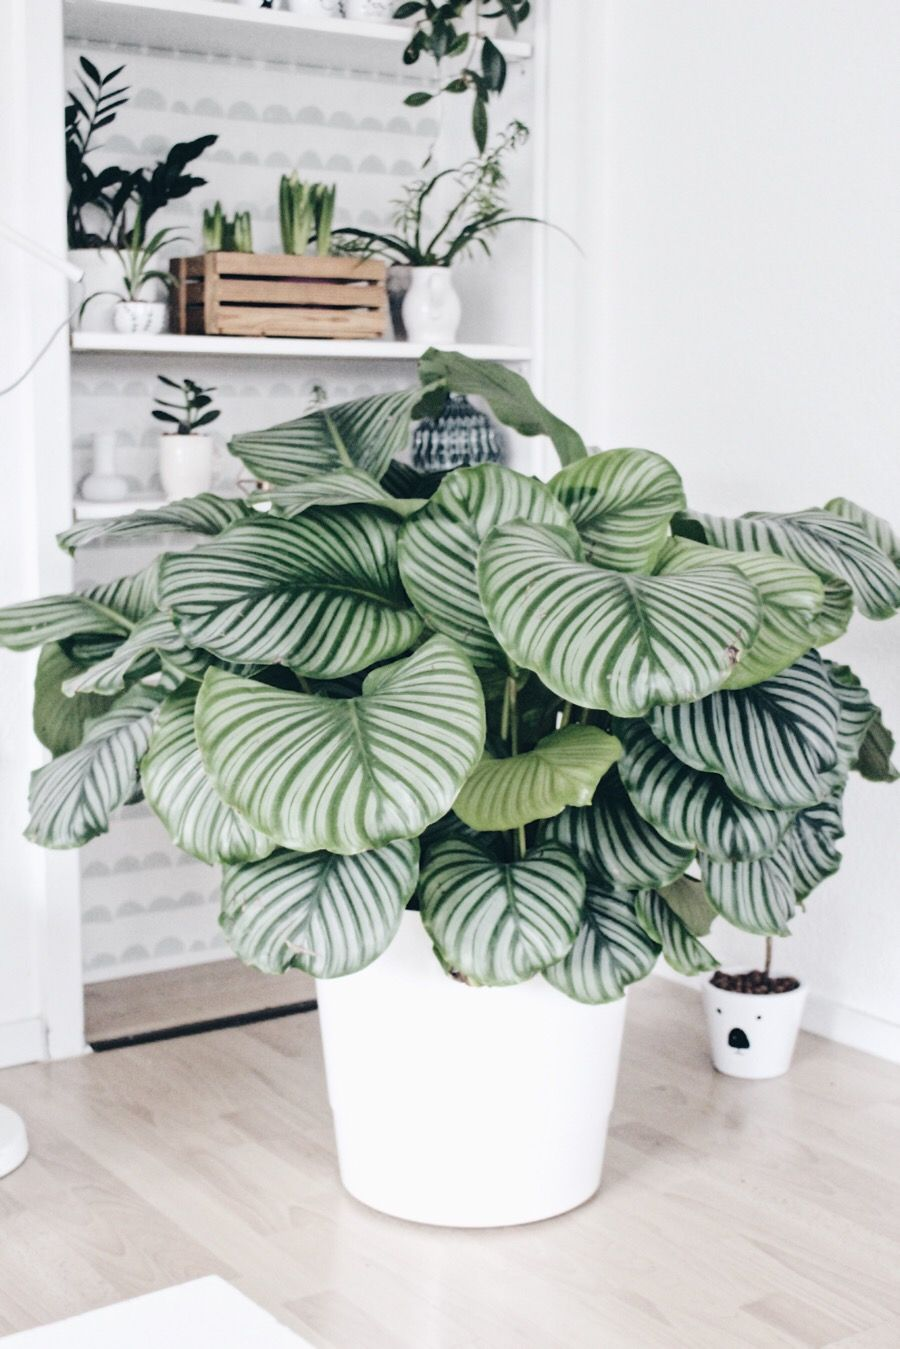 calathea die sch nheit aus dem urwald en 2018 details details pinterest plantes. Black Bedroom Furniture Sets. Home Design Ideas